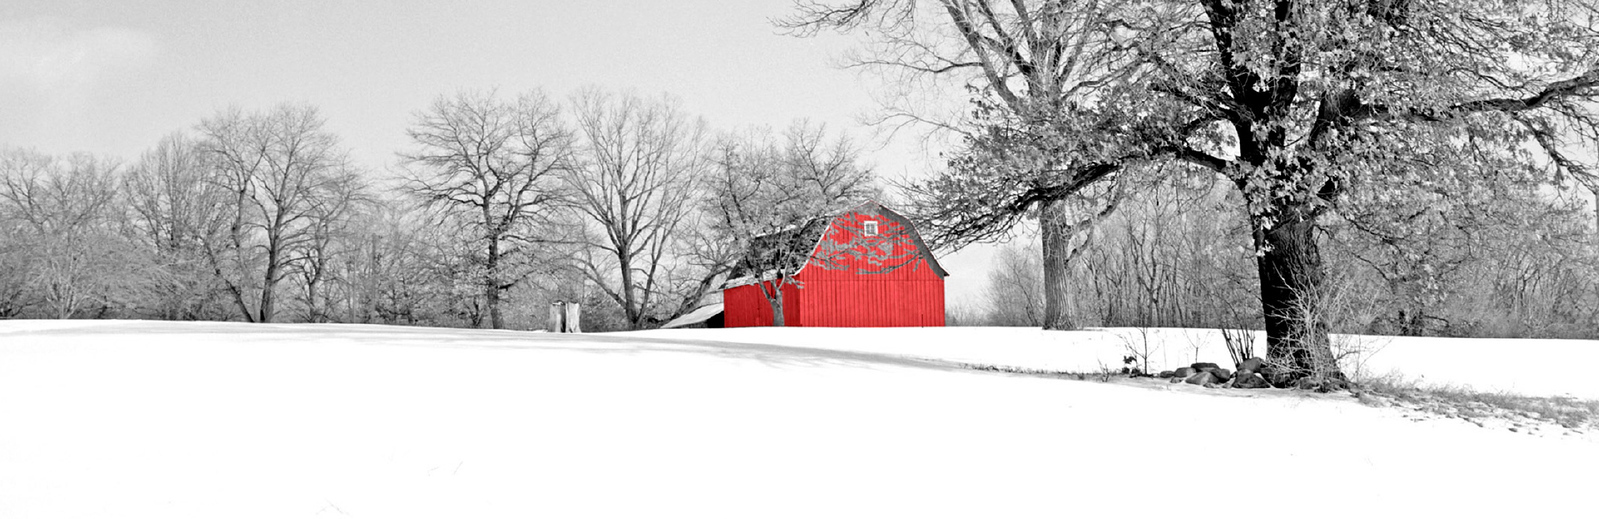 Red Barn in Winter's Snow